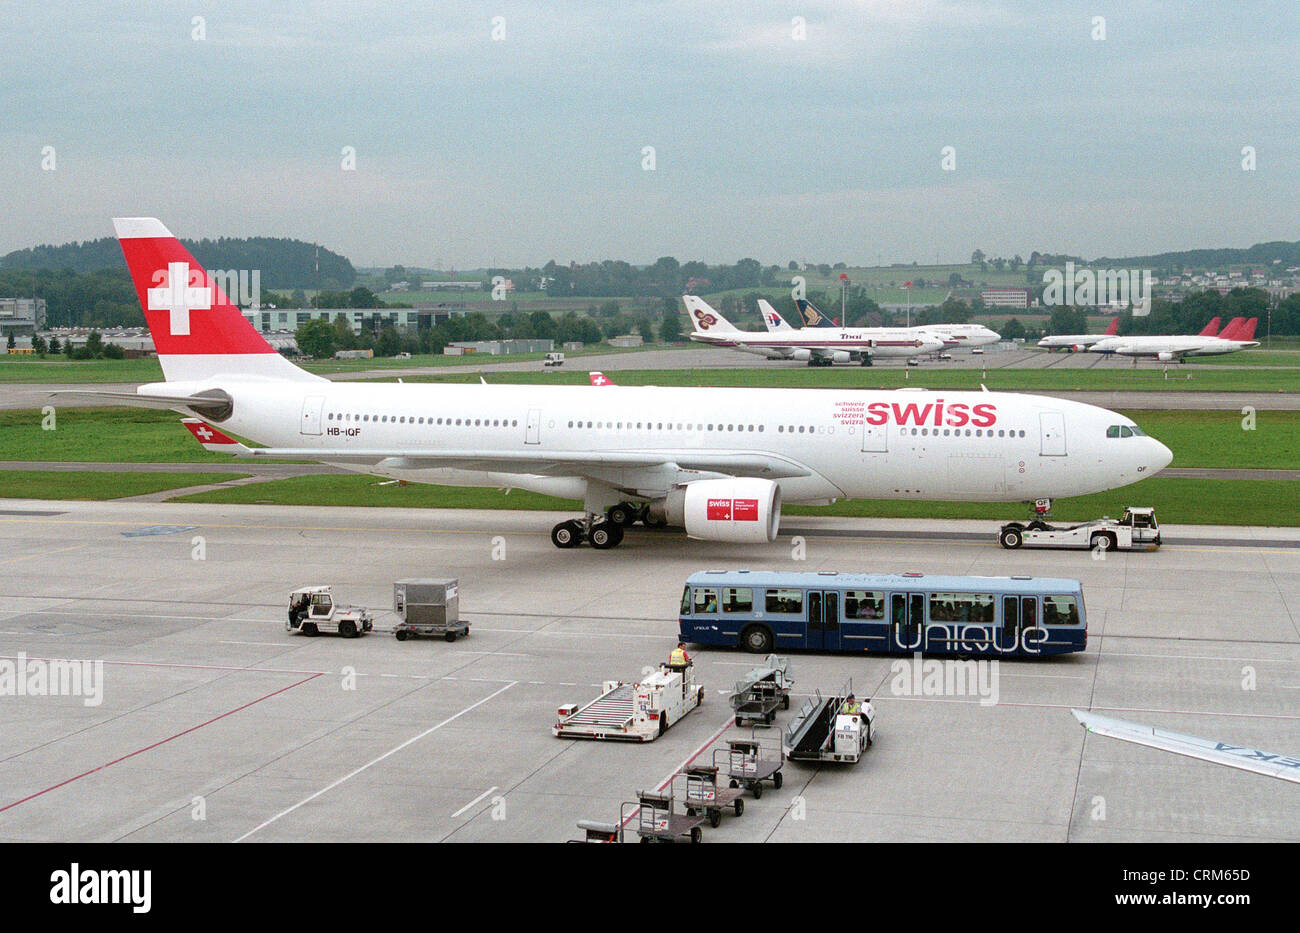 Swiss Air Lines plane taxiing to the runway - Stock Image